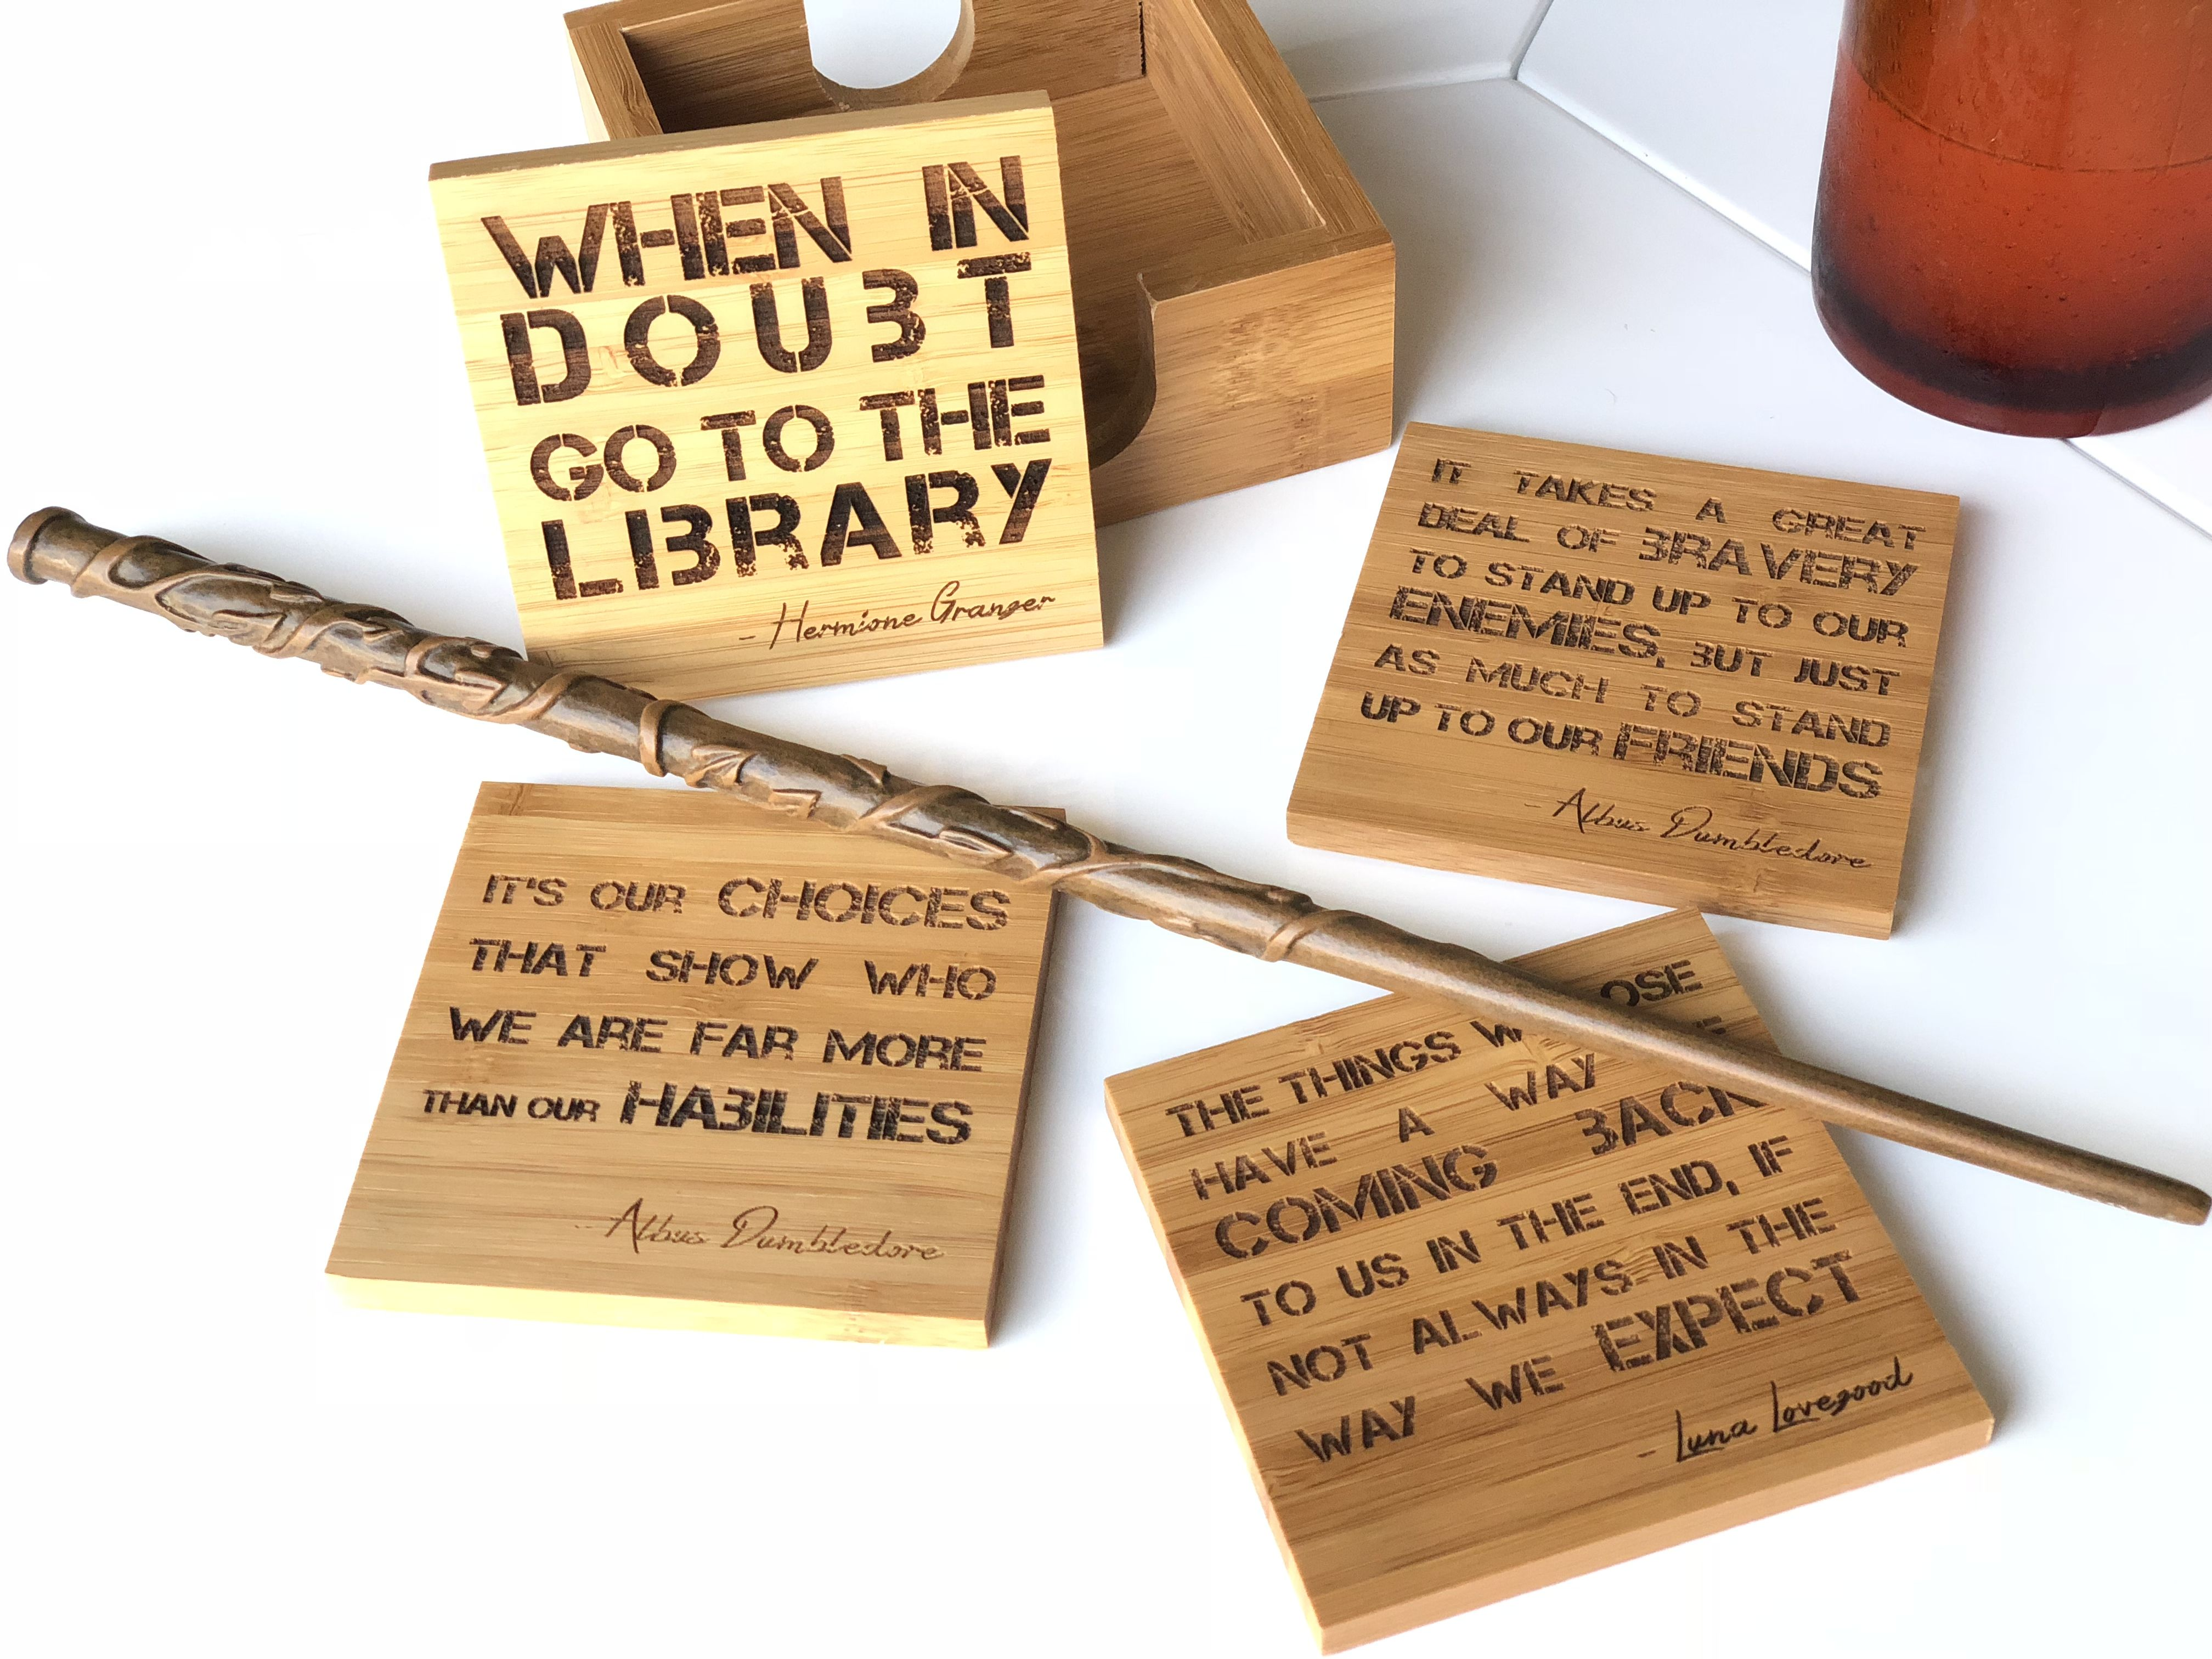 Harry Potter Quotes Custom Engraved Coaster Set With Holder 20 To Choose From Make Your Own Engraved Coasters Harry Potter Quotes Custom Coasters